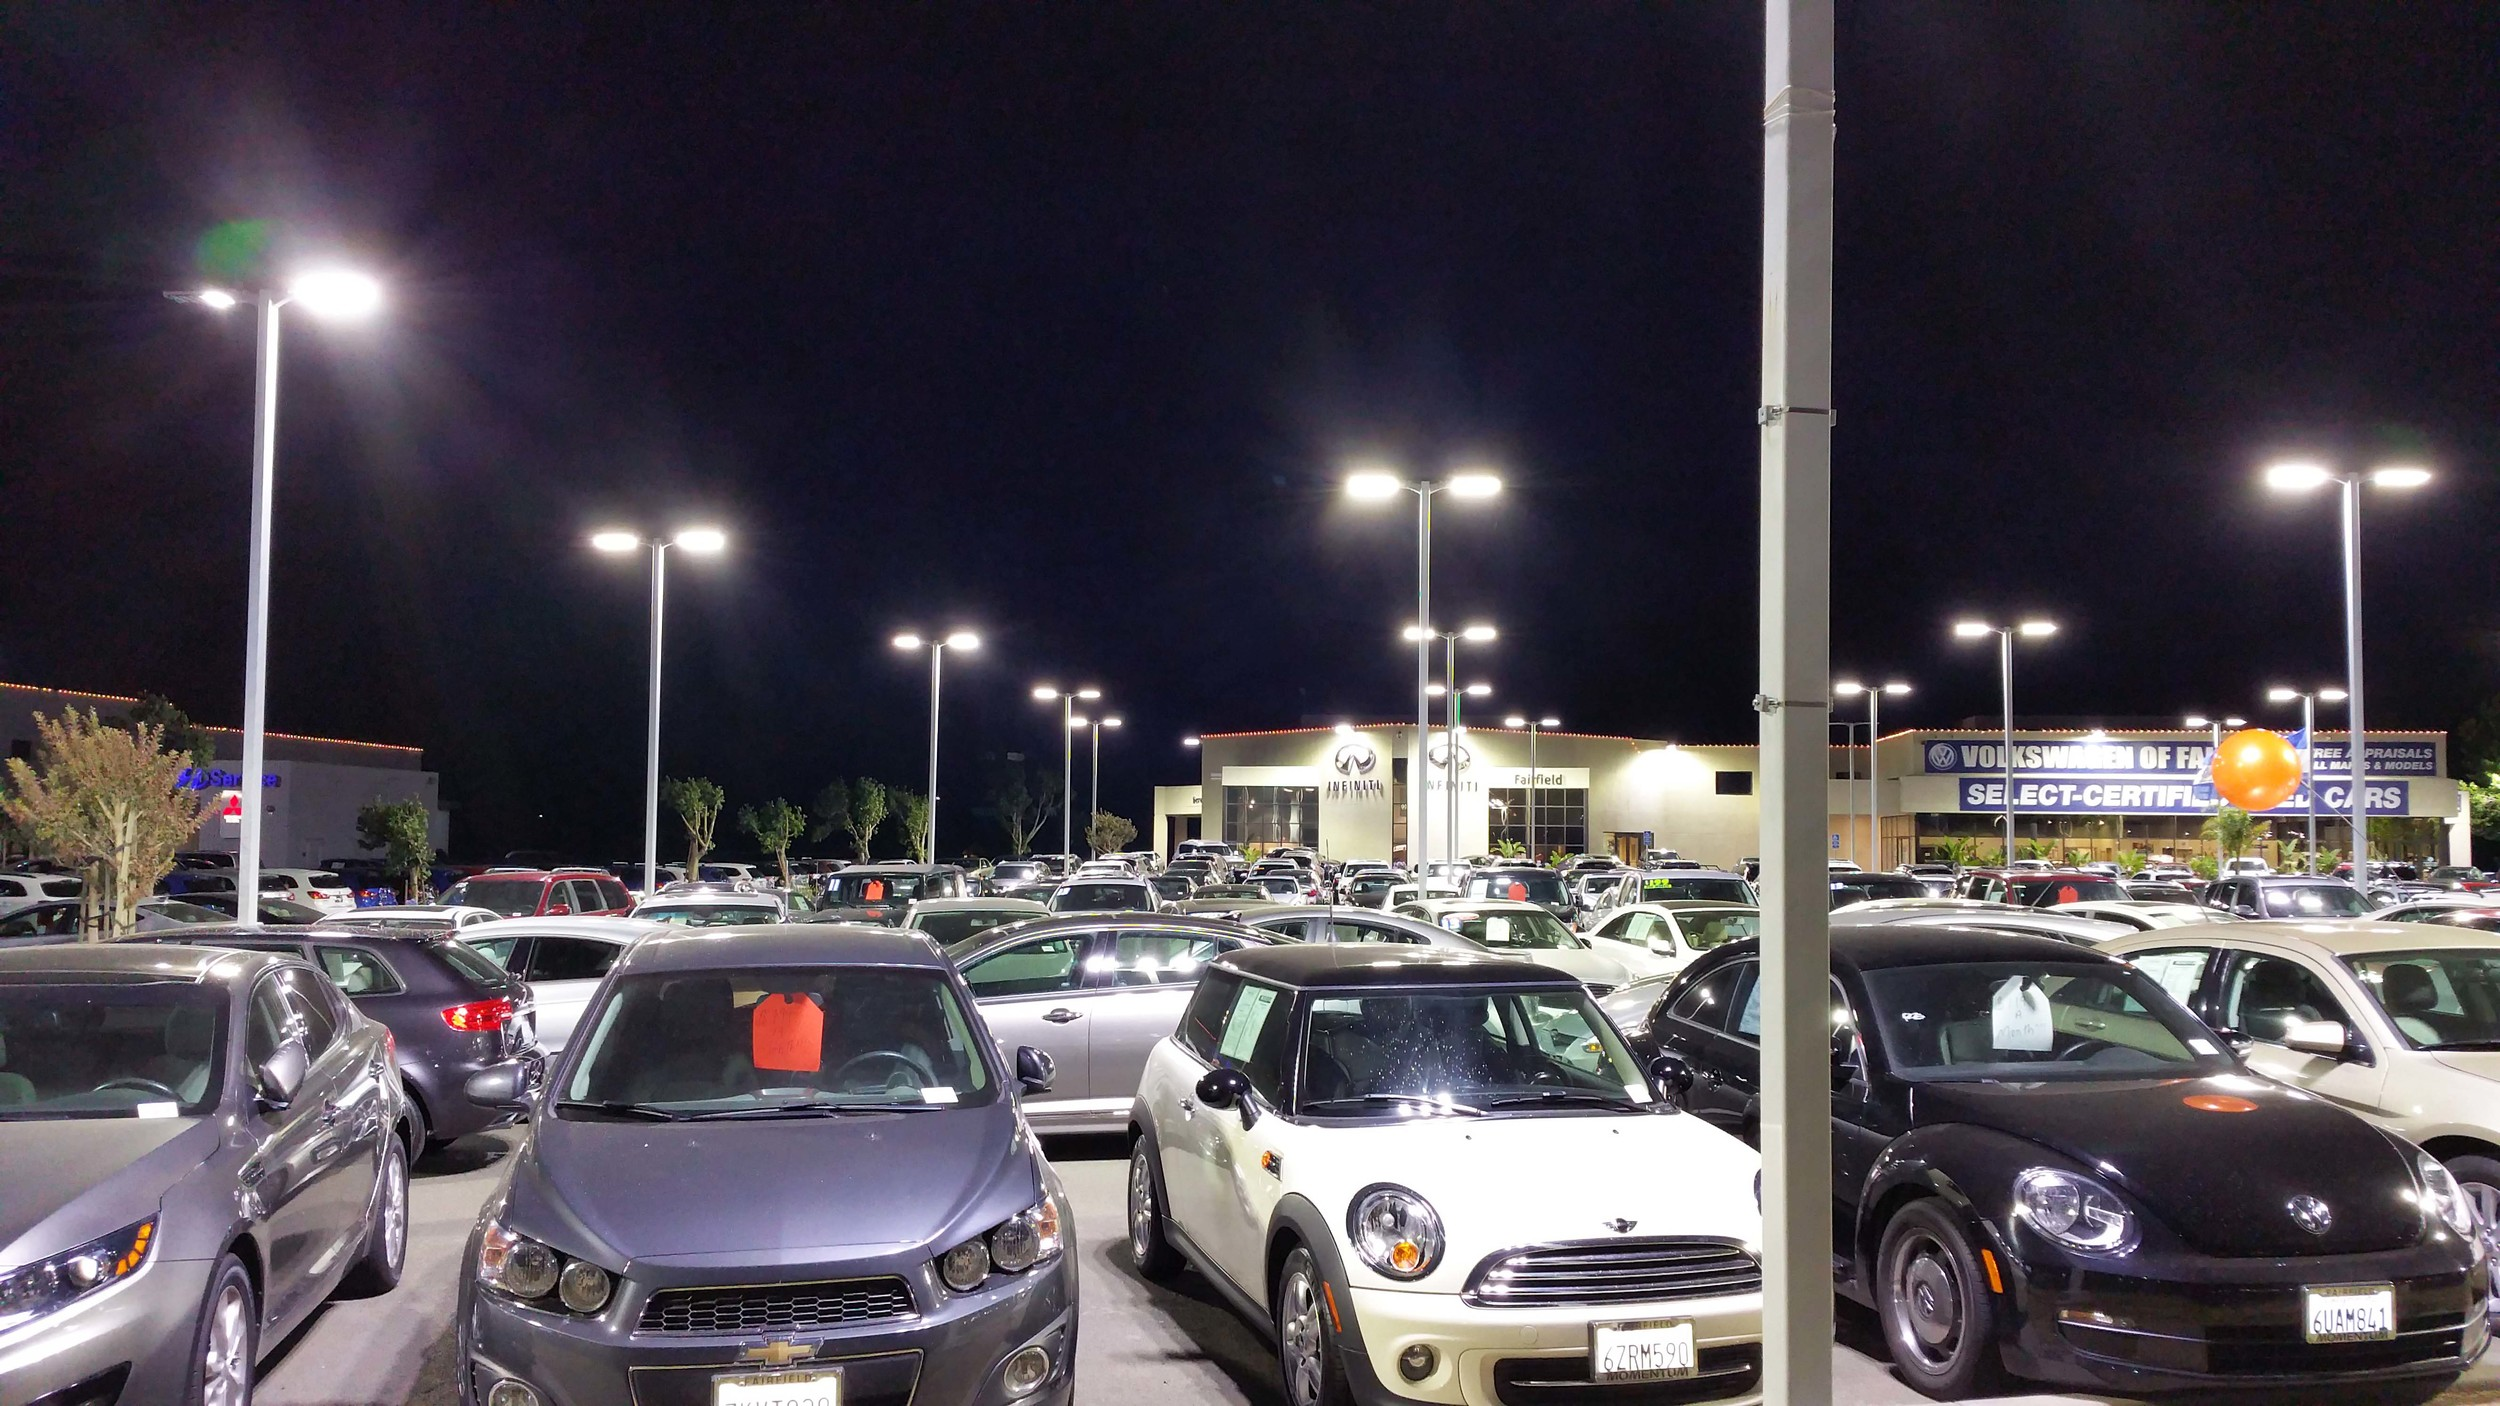 Awaken LED Lighting - Qx8Ho - Car Dealership - Infiniti / Volkswagen 6